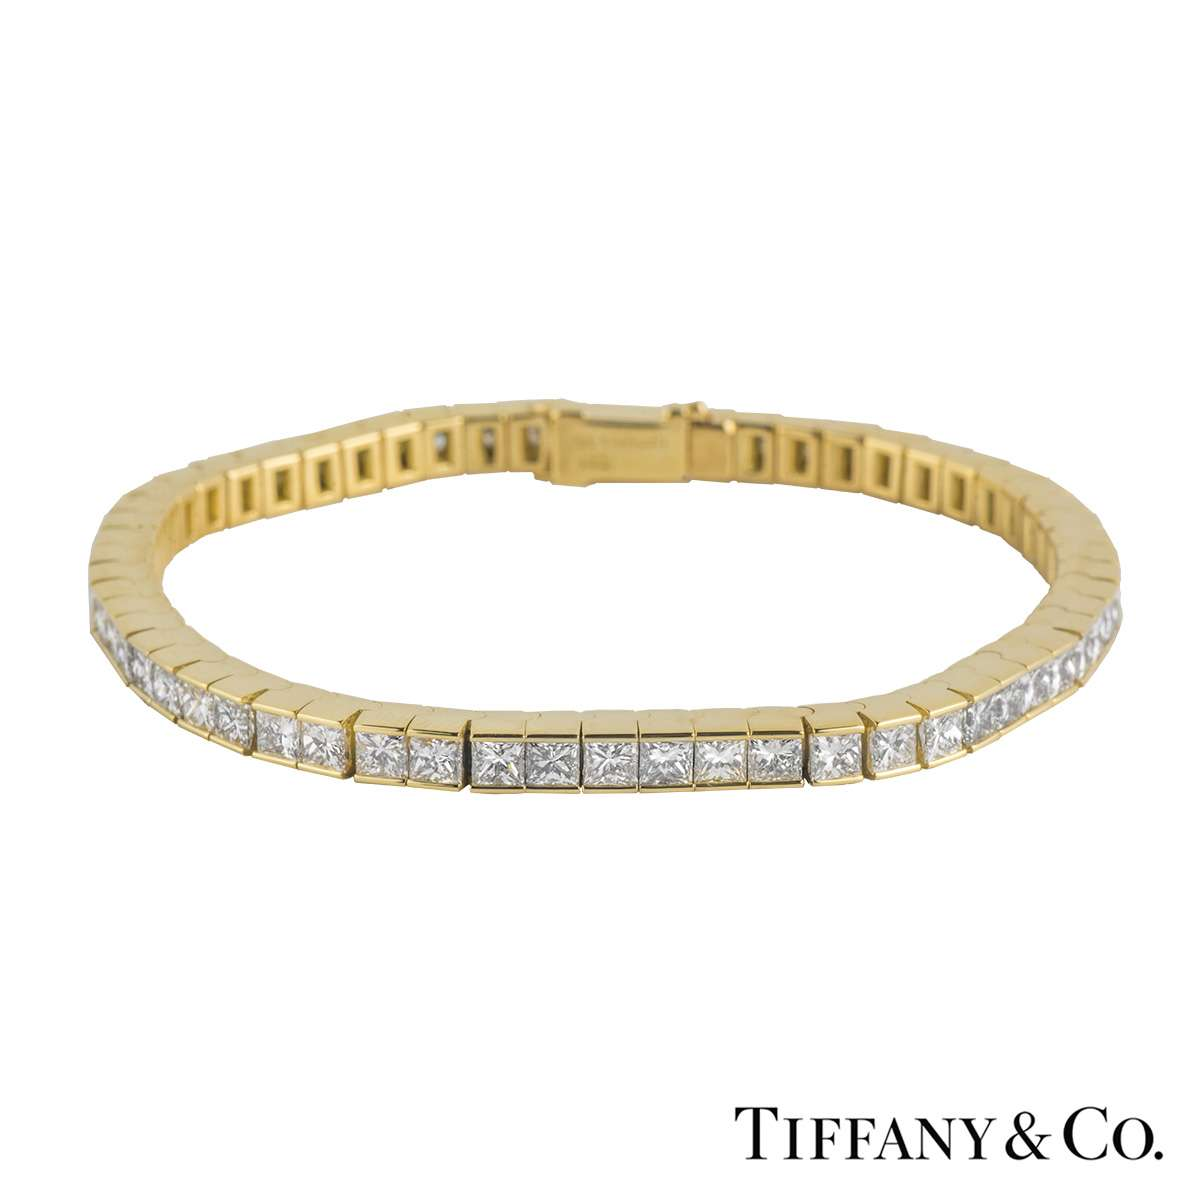 46b972f97 Tiffany & Co 18k Yellow Gold Diamond Line Bracelet 15.00ct